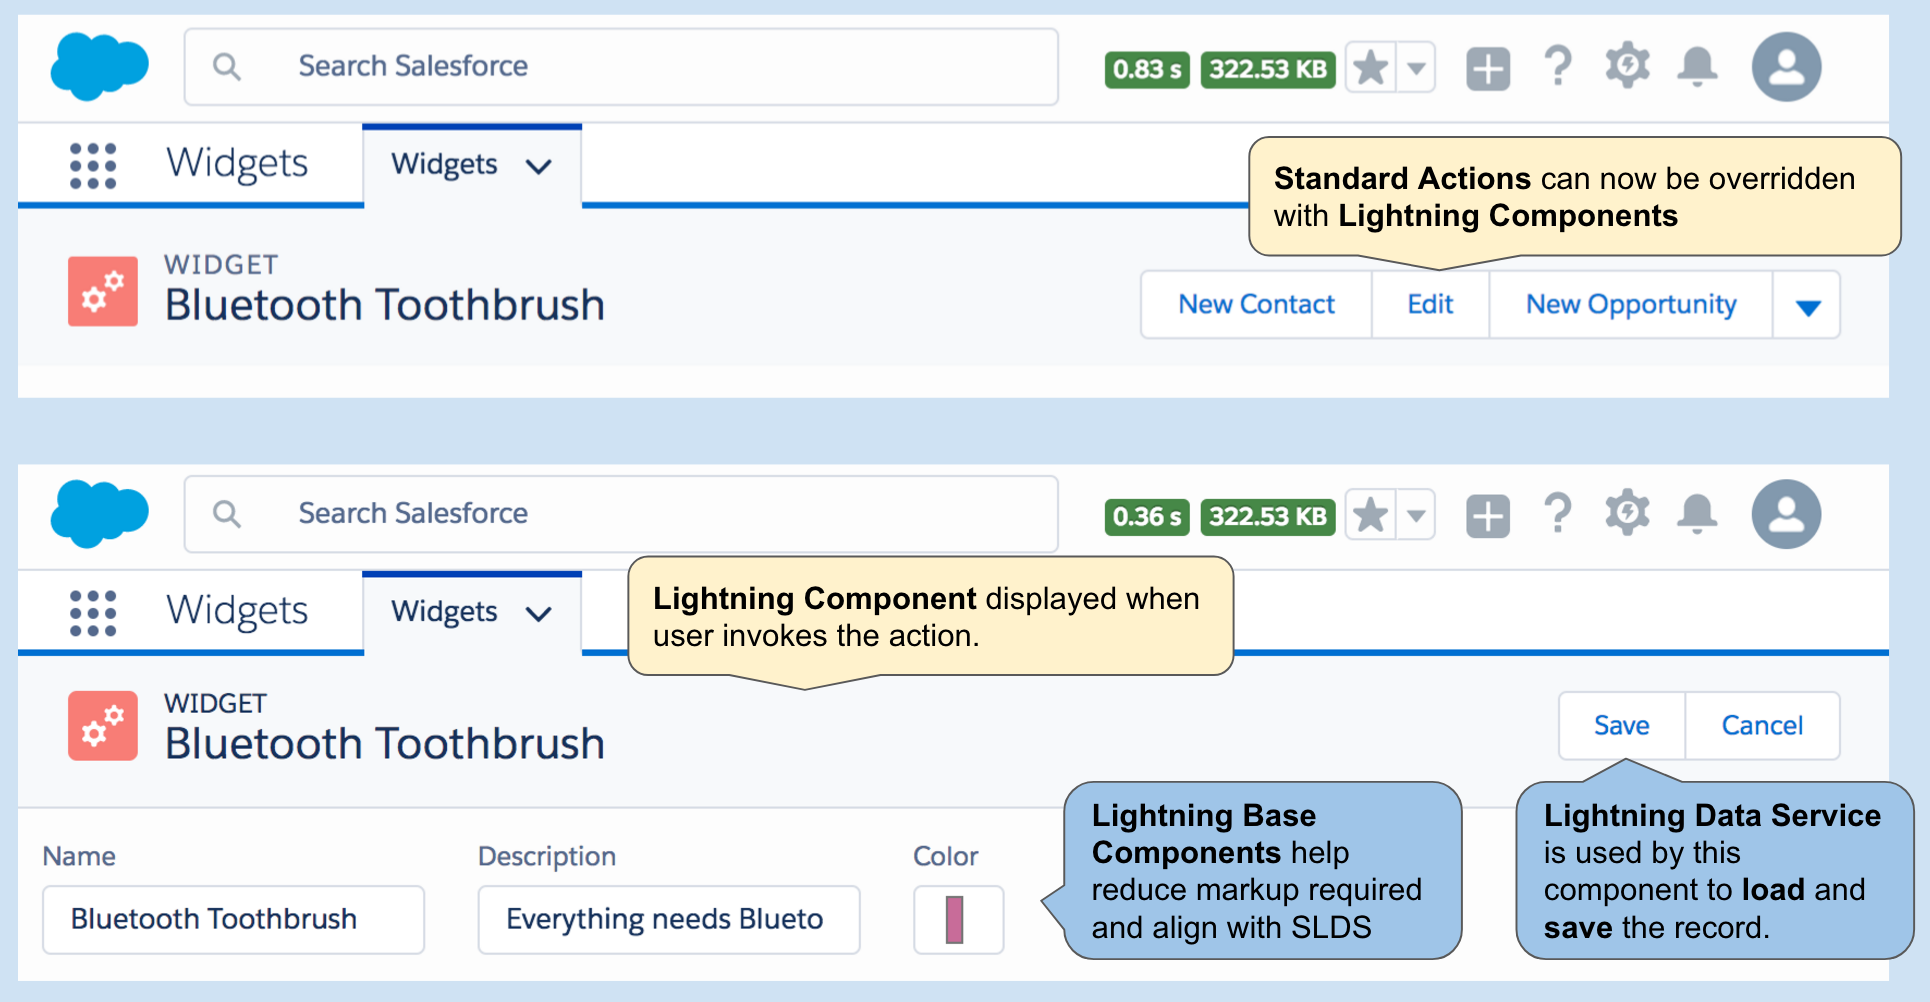 Overriding Standard Actions with Lightning Components | Andy